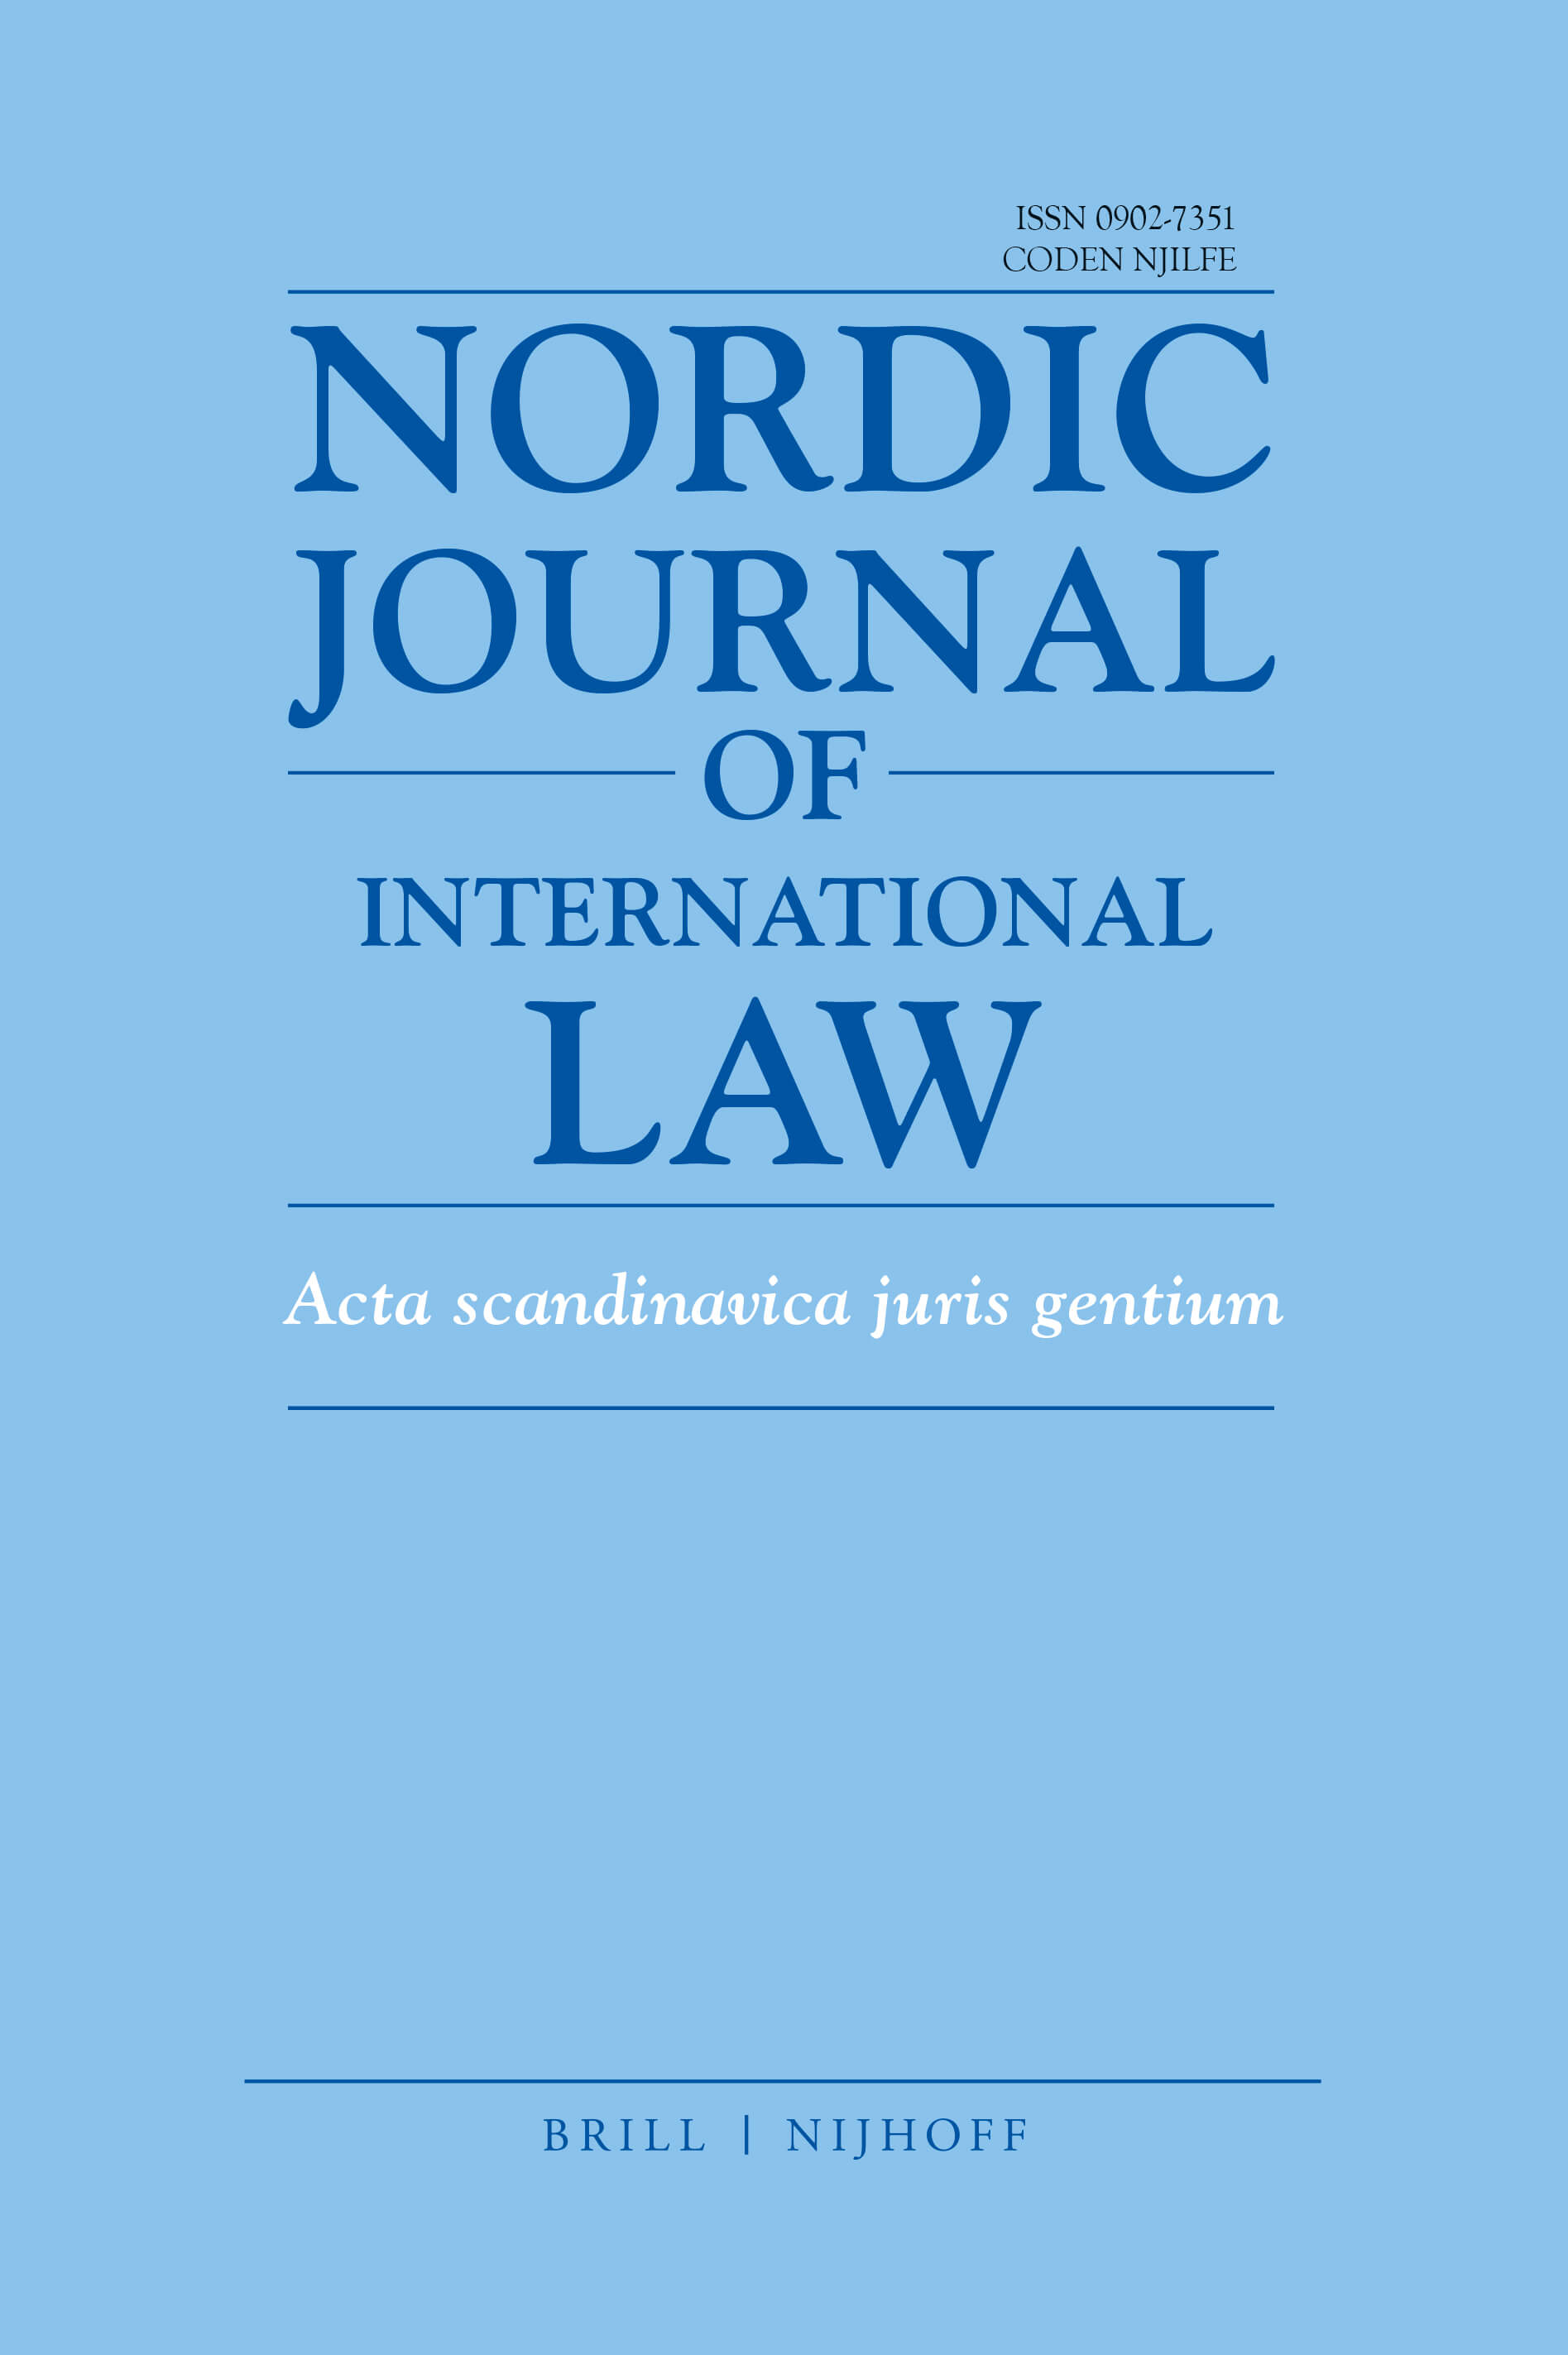 Nordic Journal of International Law - Volume 88 (2019): Issue 2 (Apr 2019)